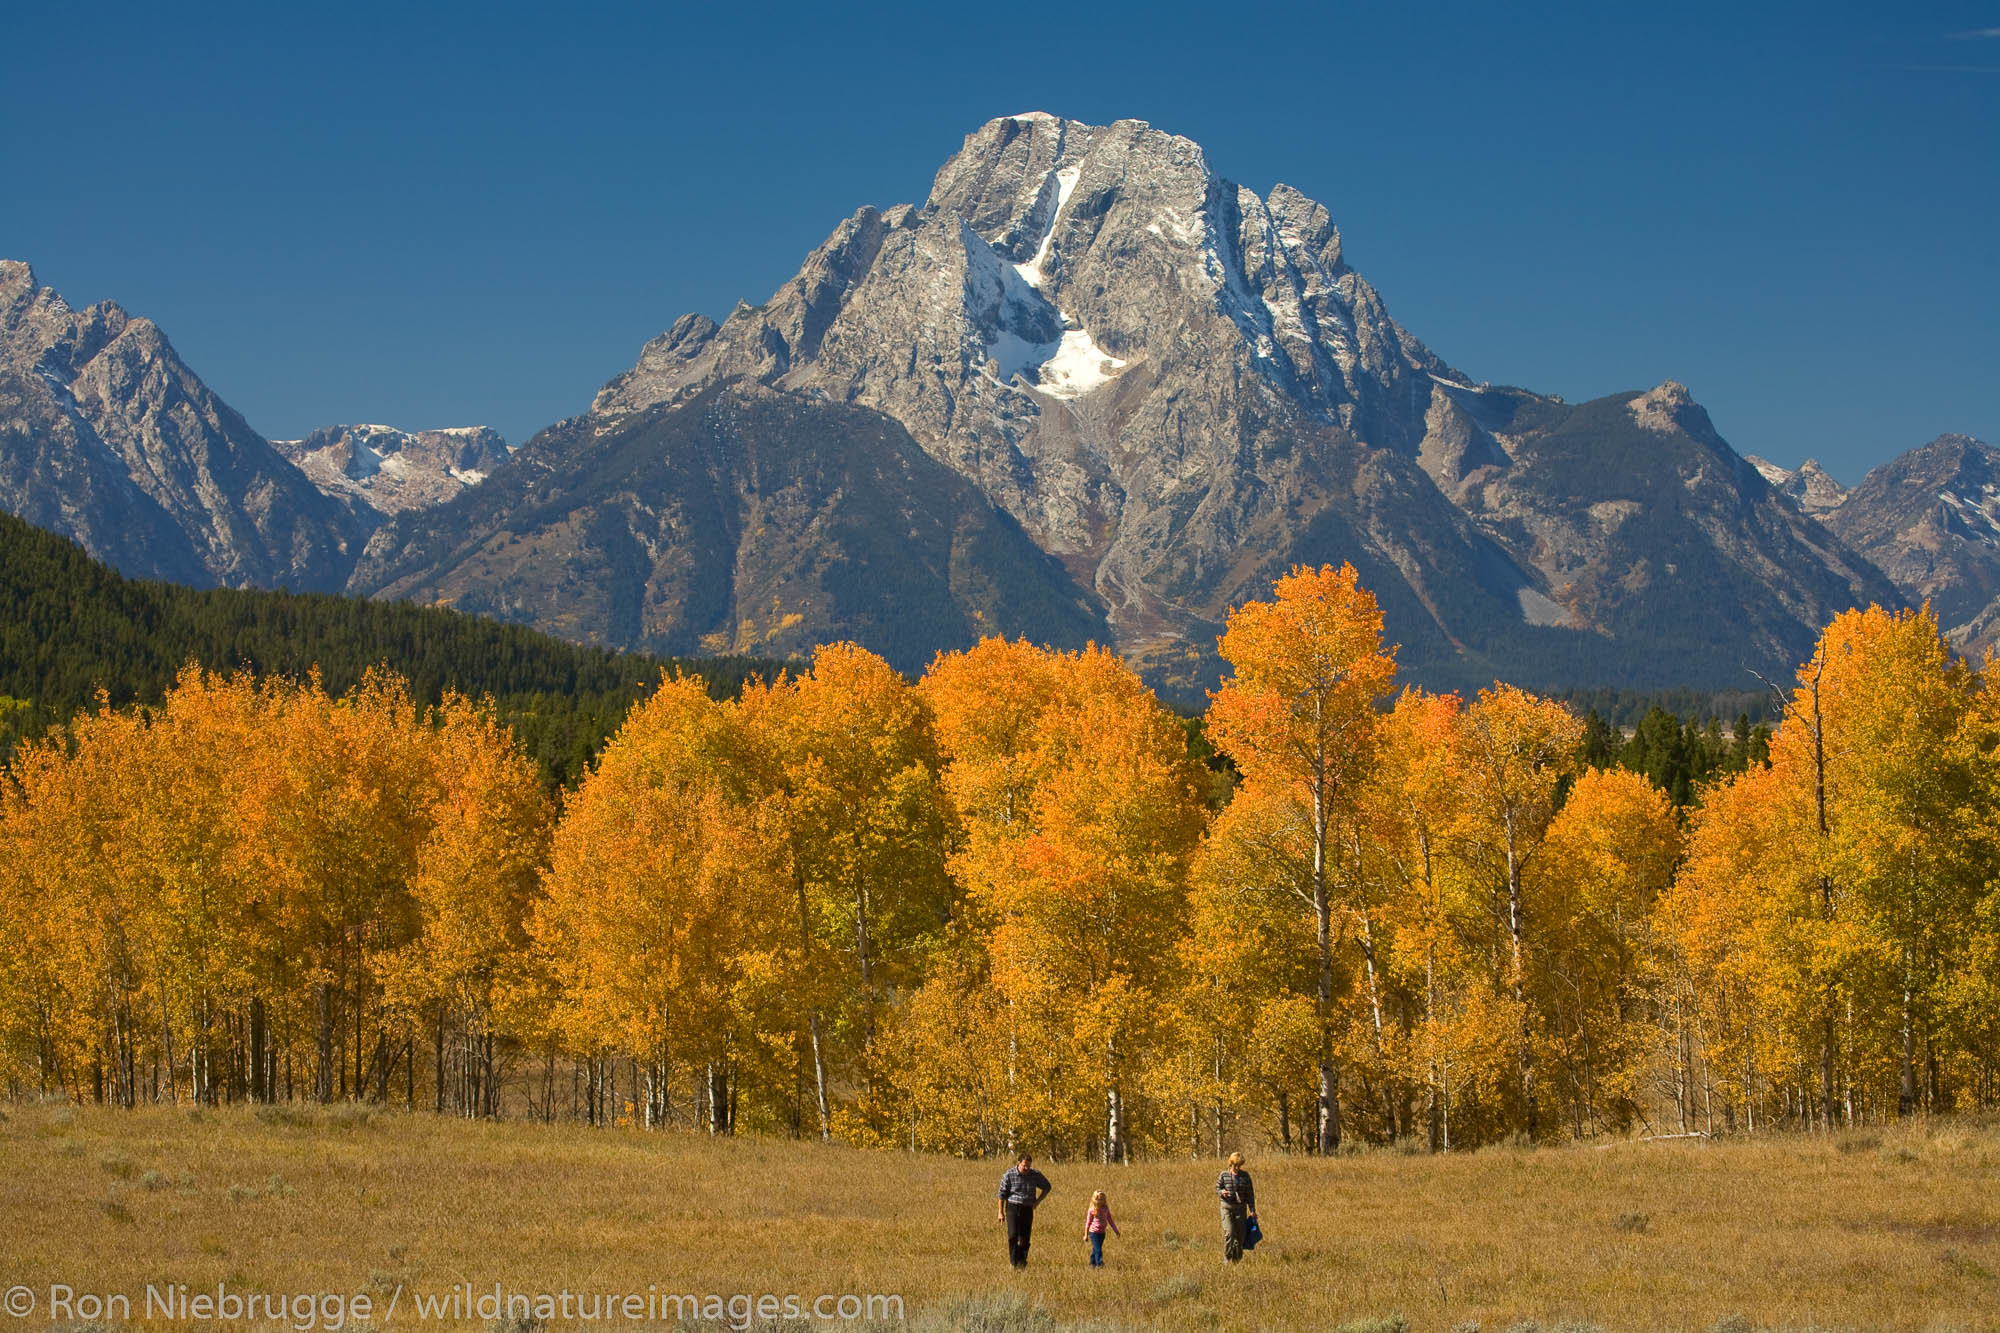 Visitors and Mount Moran from near Oxbow Bend, Grand Teton National Park, Wyoming.